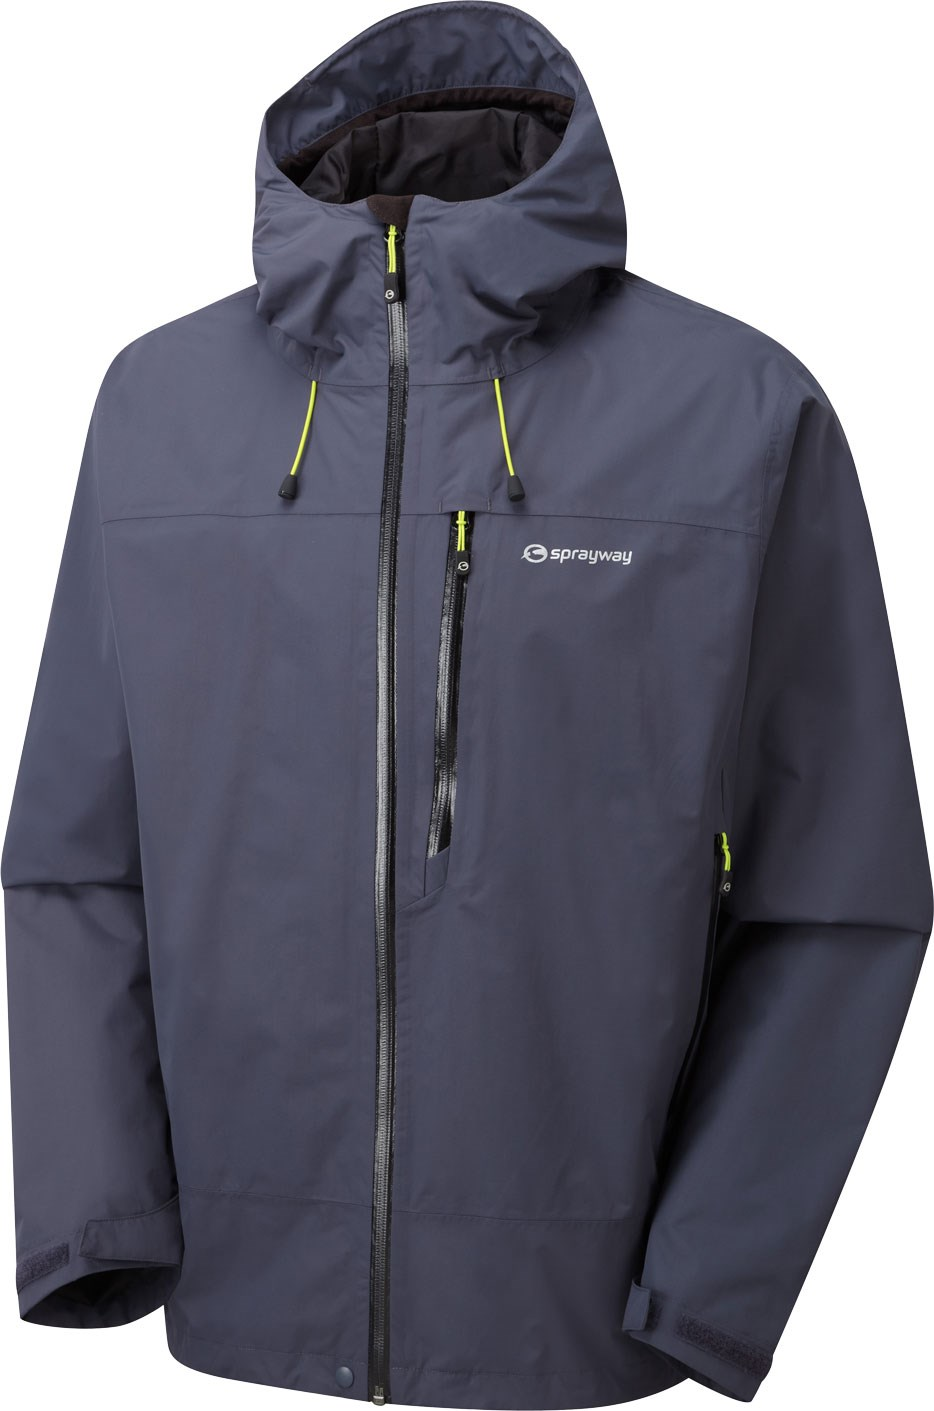 Sprayway Akutan Men's Waterproof Jacket | GO Outdoors